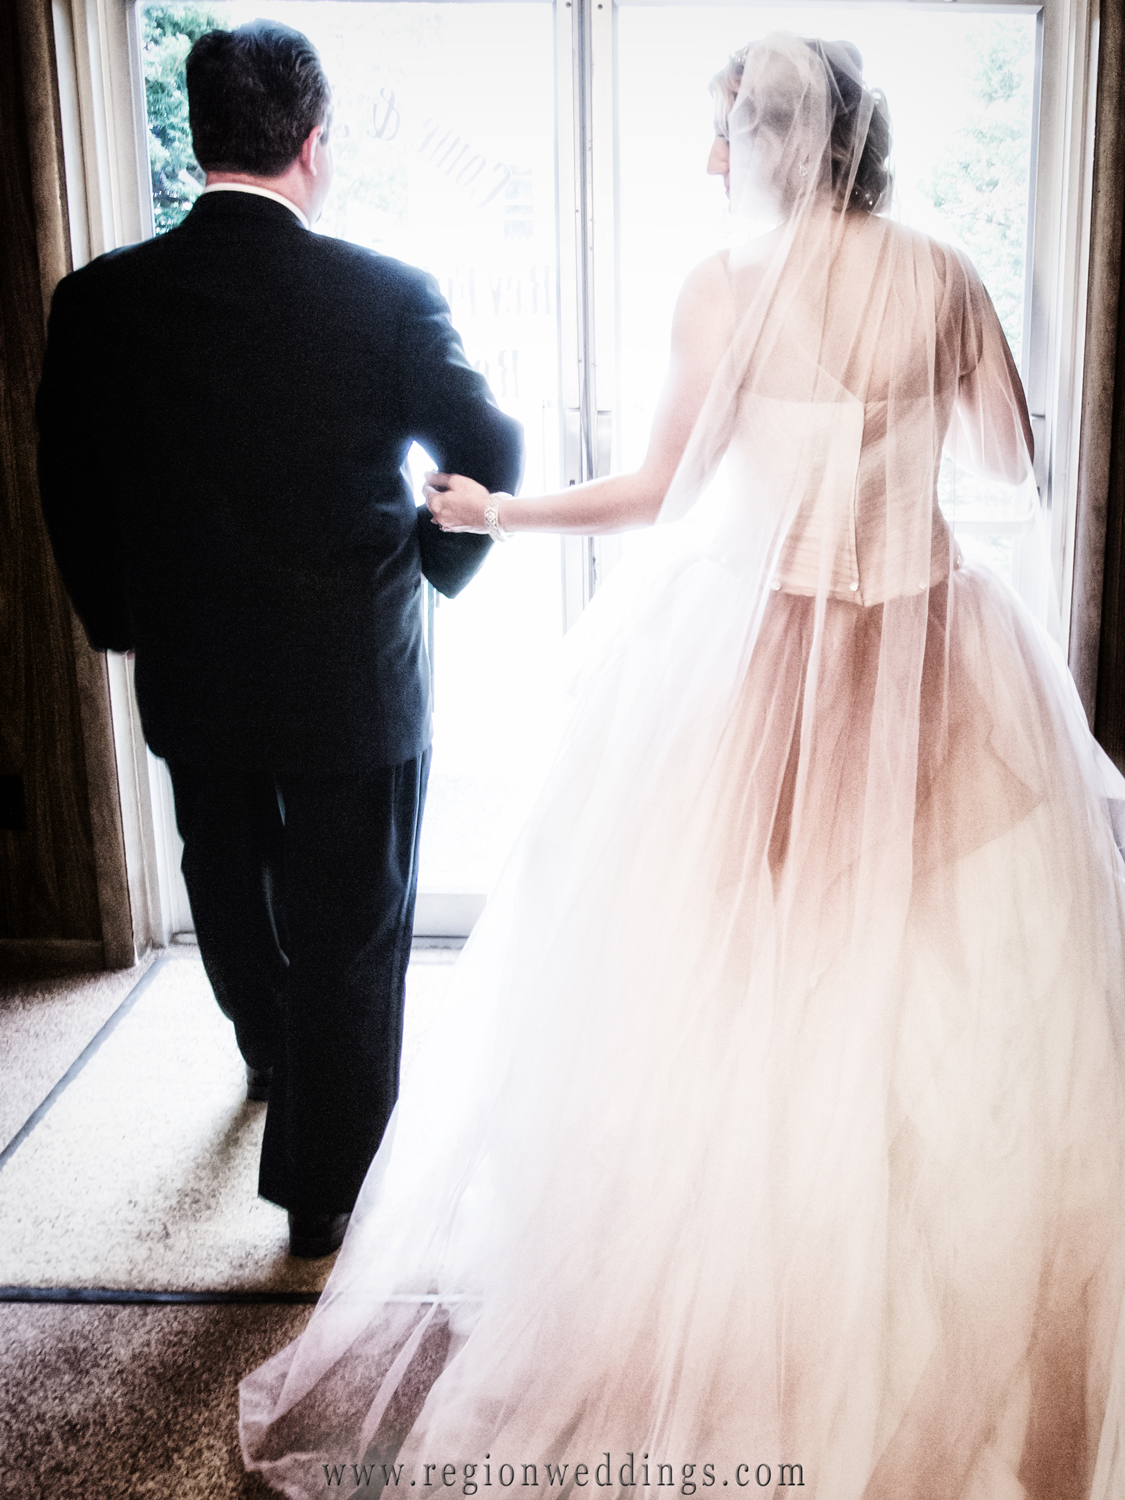 The bride and groom exit the Free Spirit Church with a glow of bright light upon them.